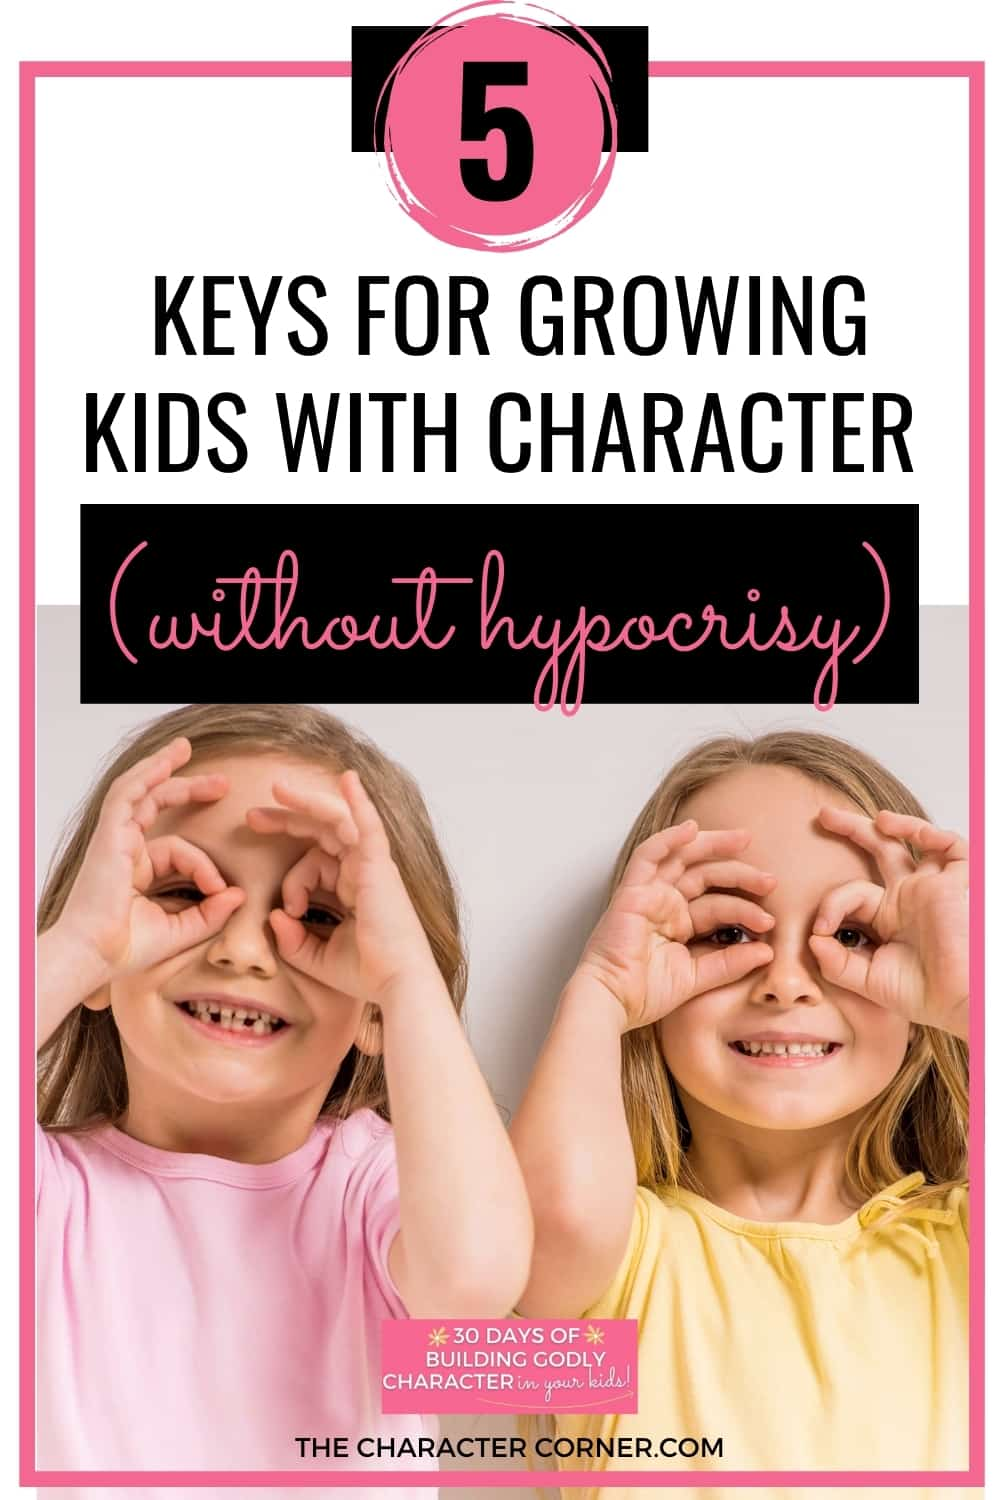 Two children who are girls looking through fingers text on image reads 5 Keys For Growing Kids With Character (without Hypocrisy)